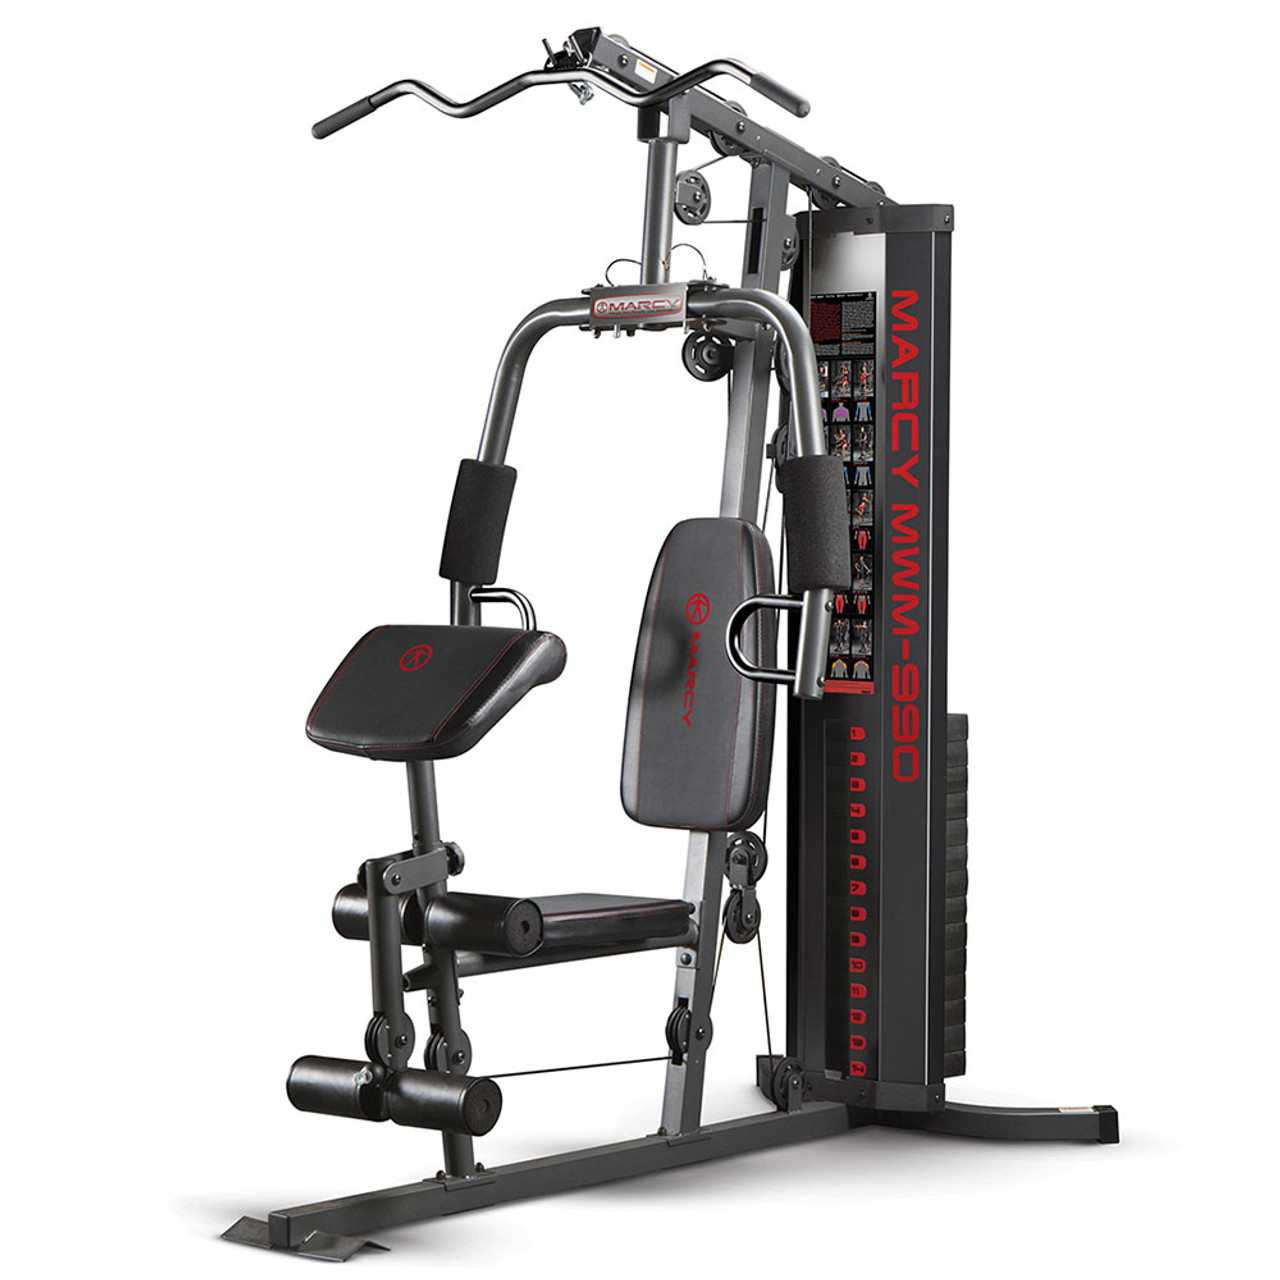 Buy the best home gym marcy 150lb stack mwm 990 marcypro.com